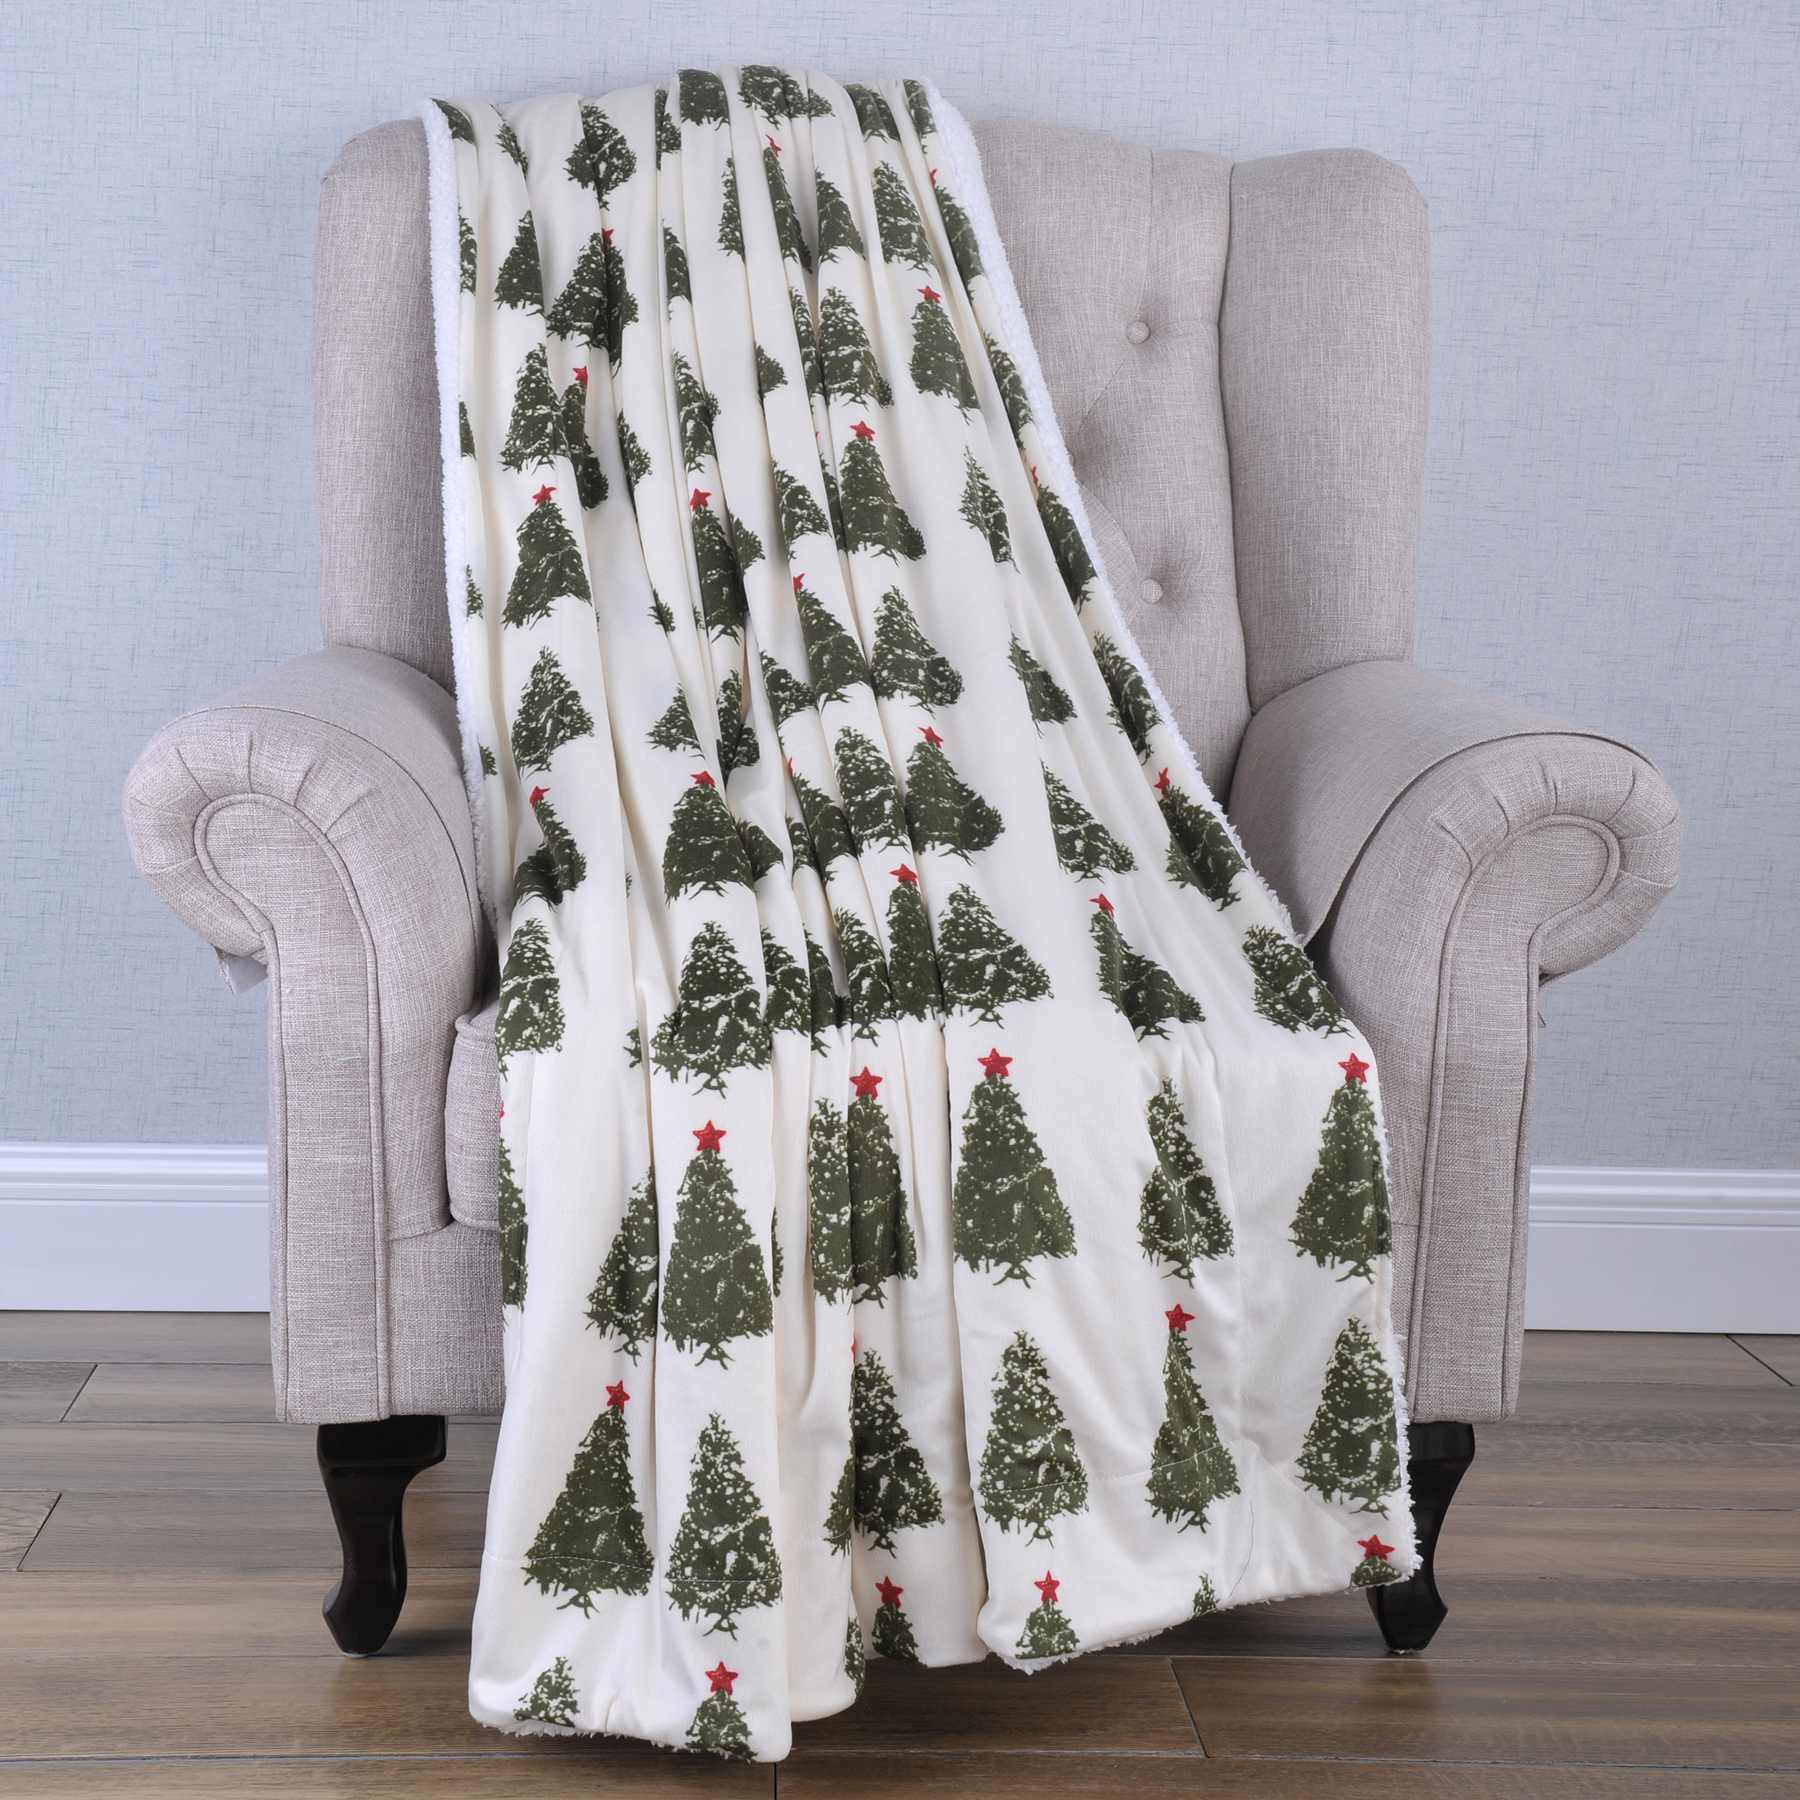 NEW Ultra Cozy /& Soft Christmas Holiday Dogs in Sweater Plush Warm Throw Blanket